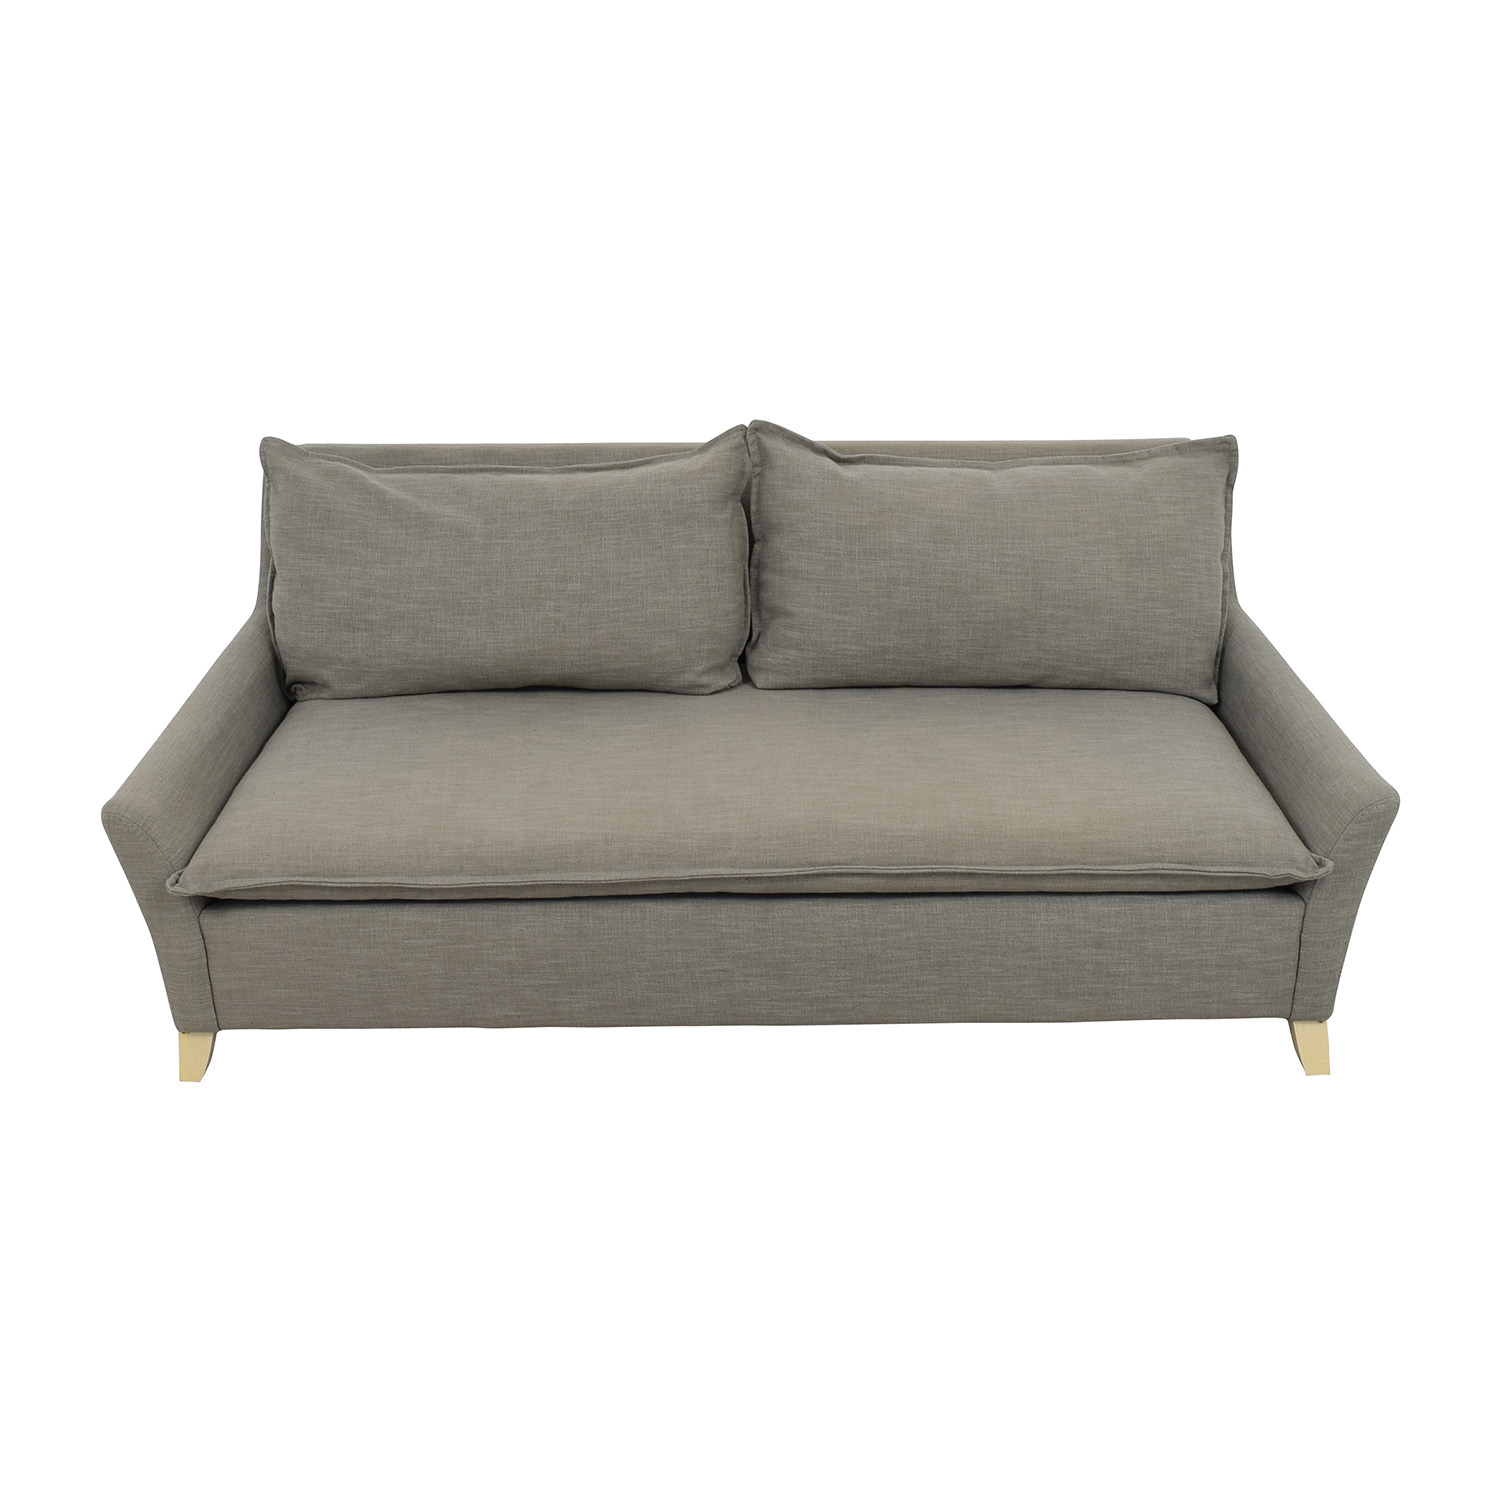 West Elm West Elm Bliss Sofa discount